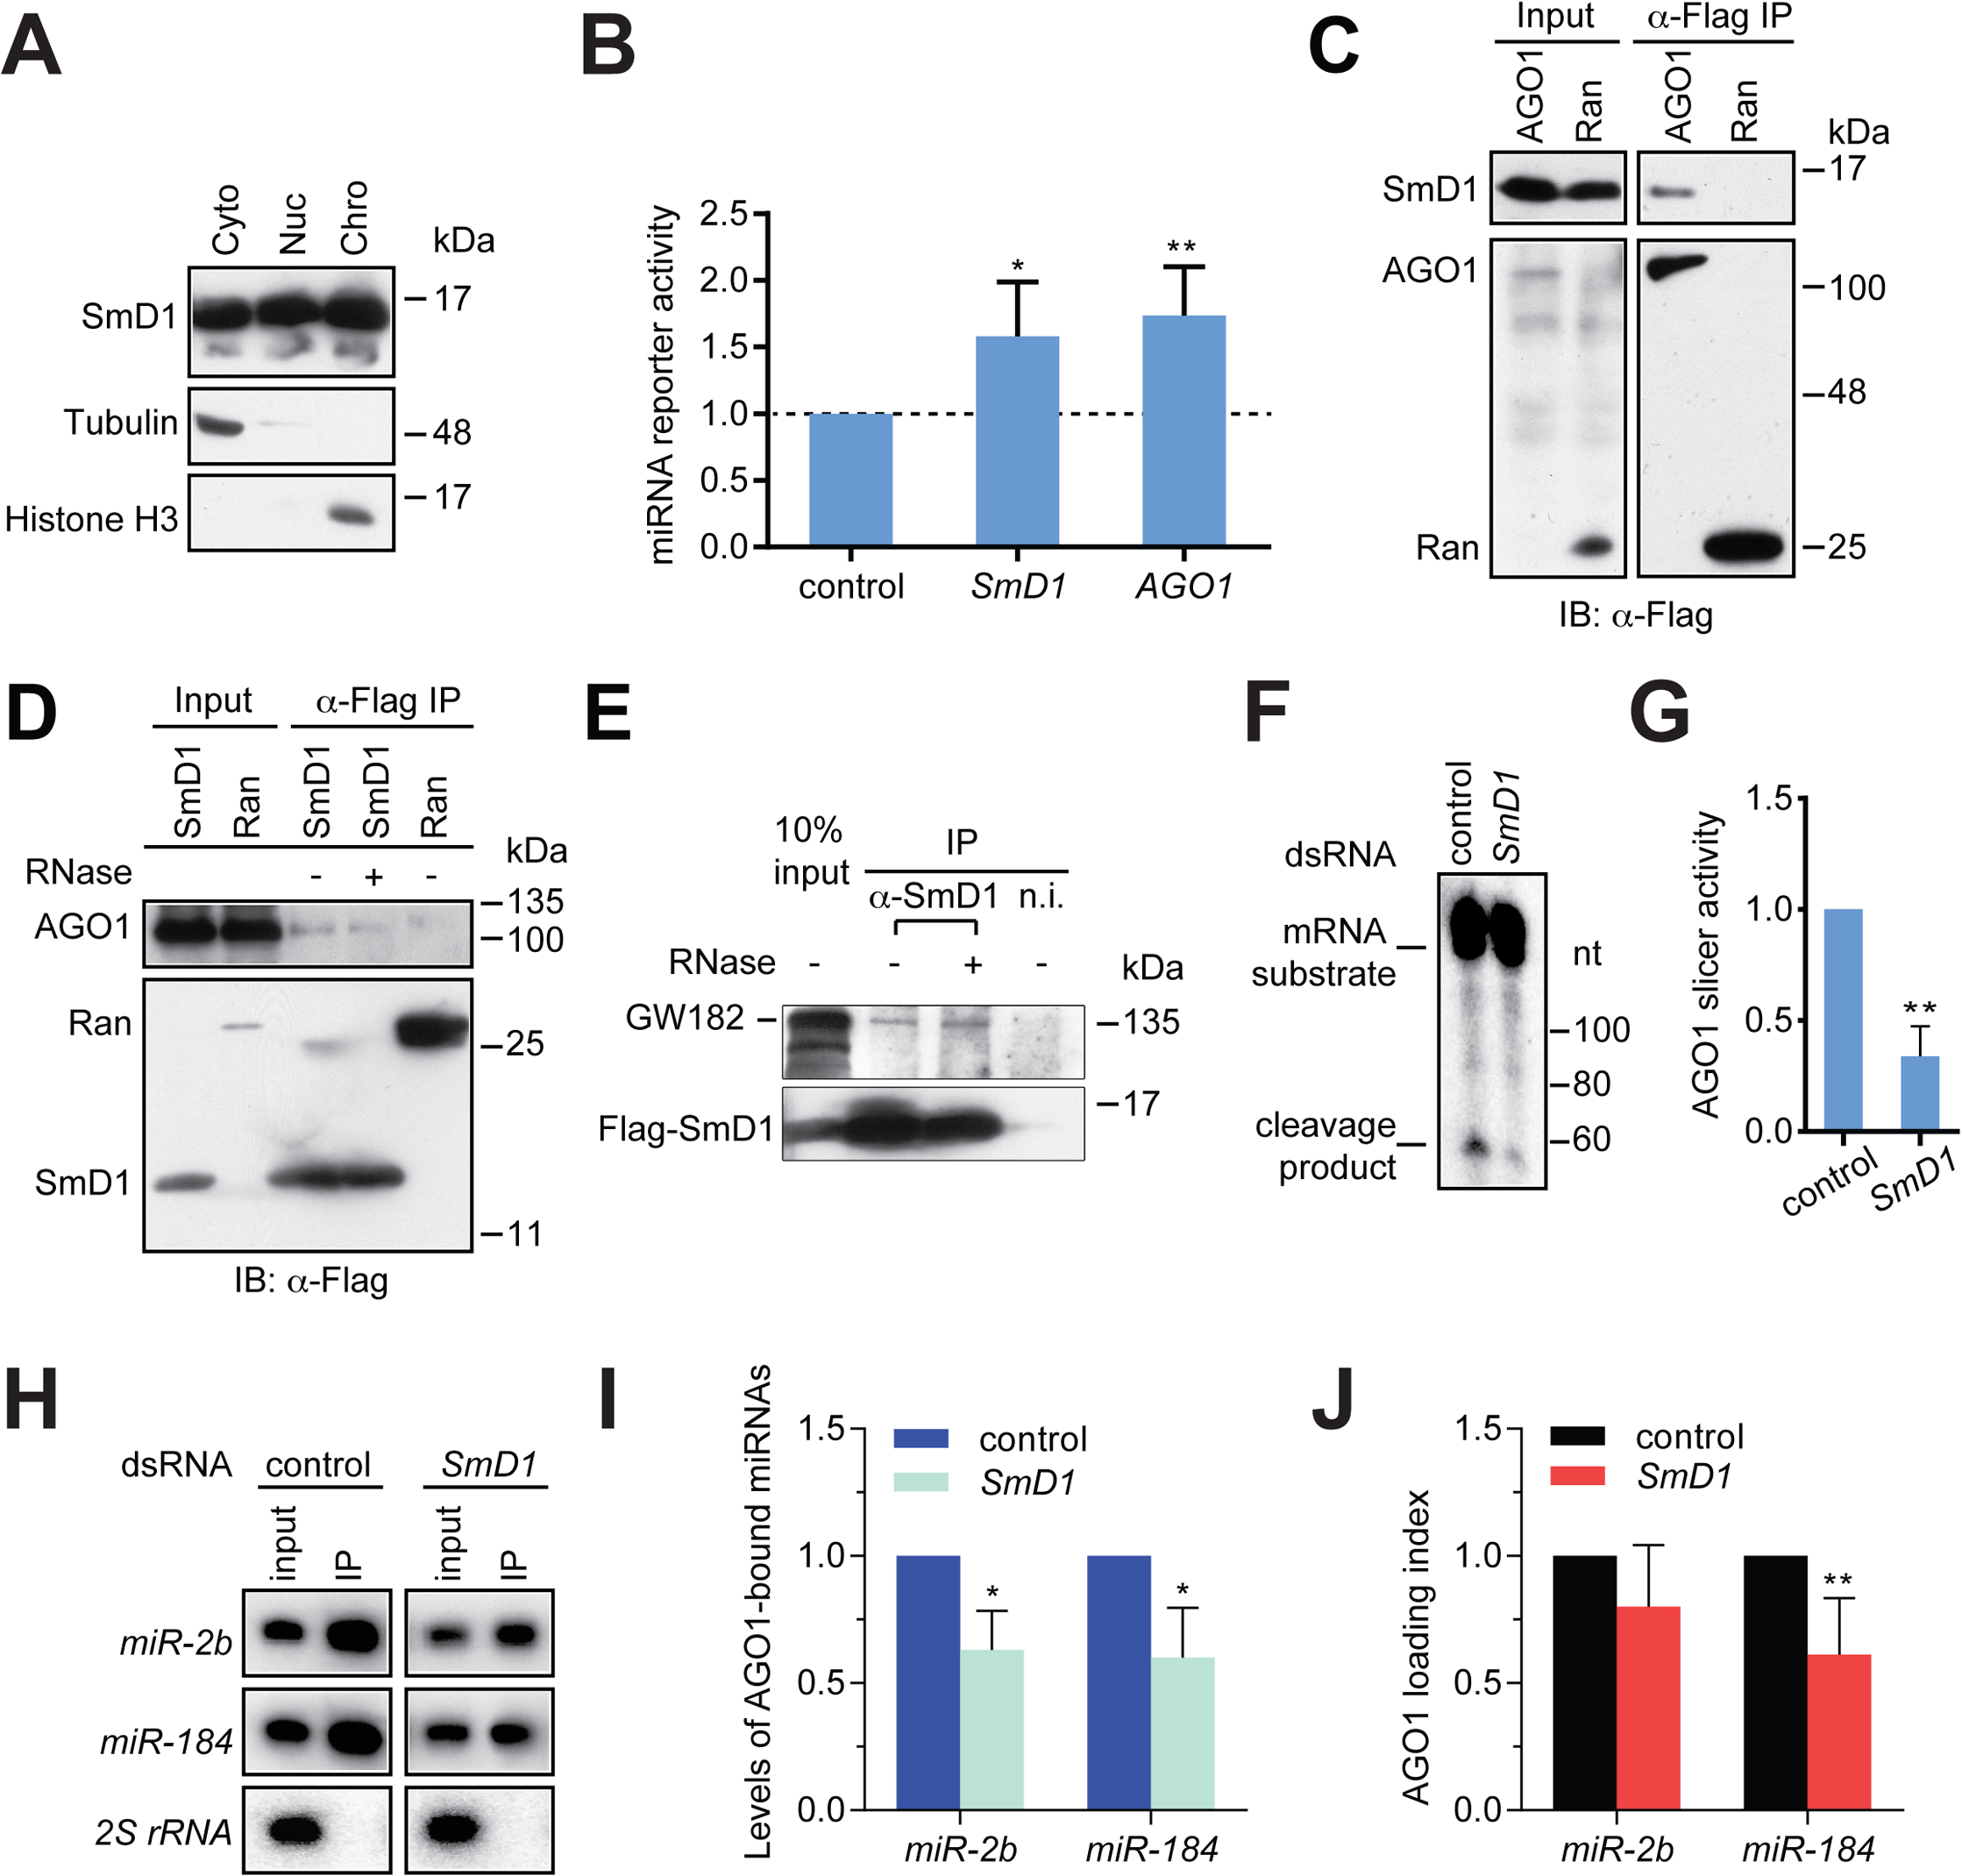 SmD1 interacts with miRISC components and loss of SmD1 abolishes miRISC assembly/function.